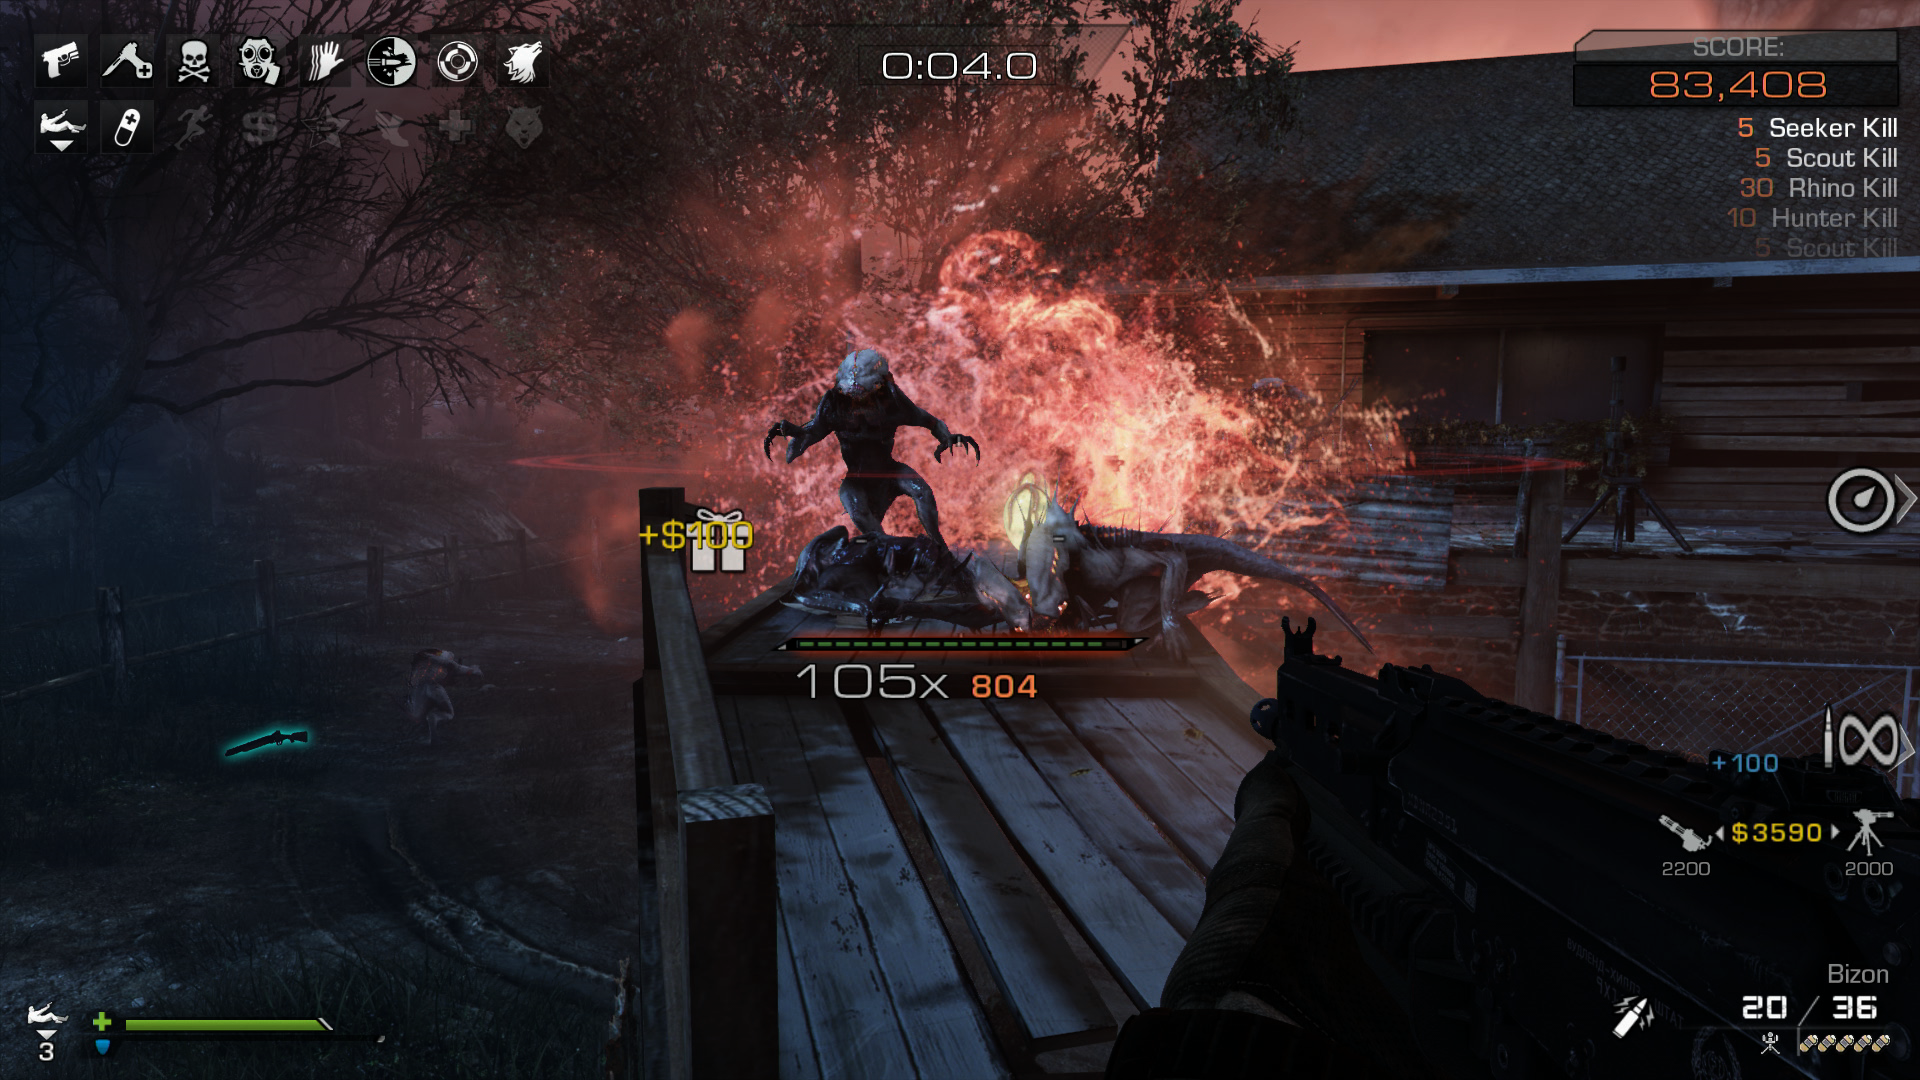 Call Of Duty Ghosts Chaos Mode Gameplay Detailed In New Dev Diary Vg247